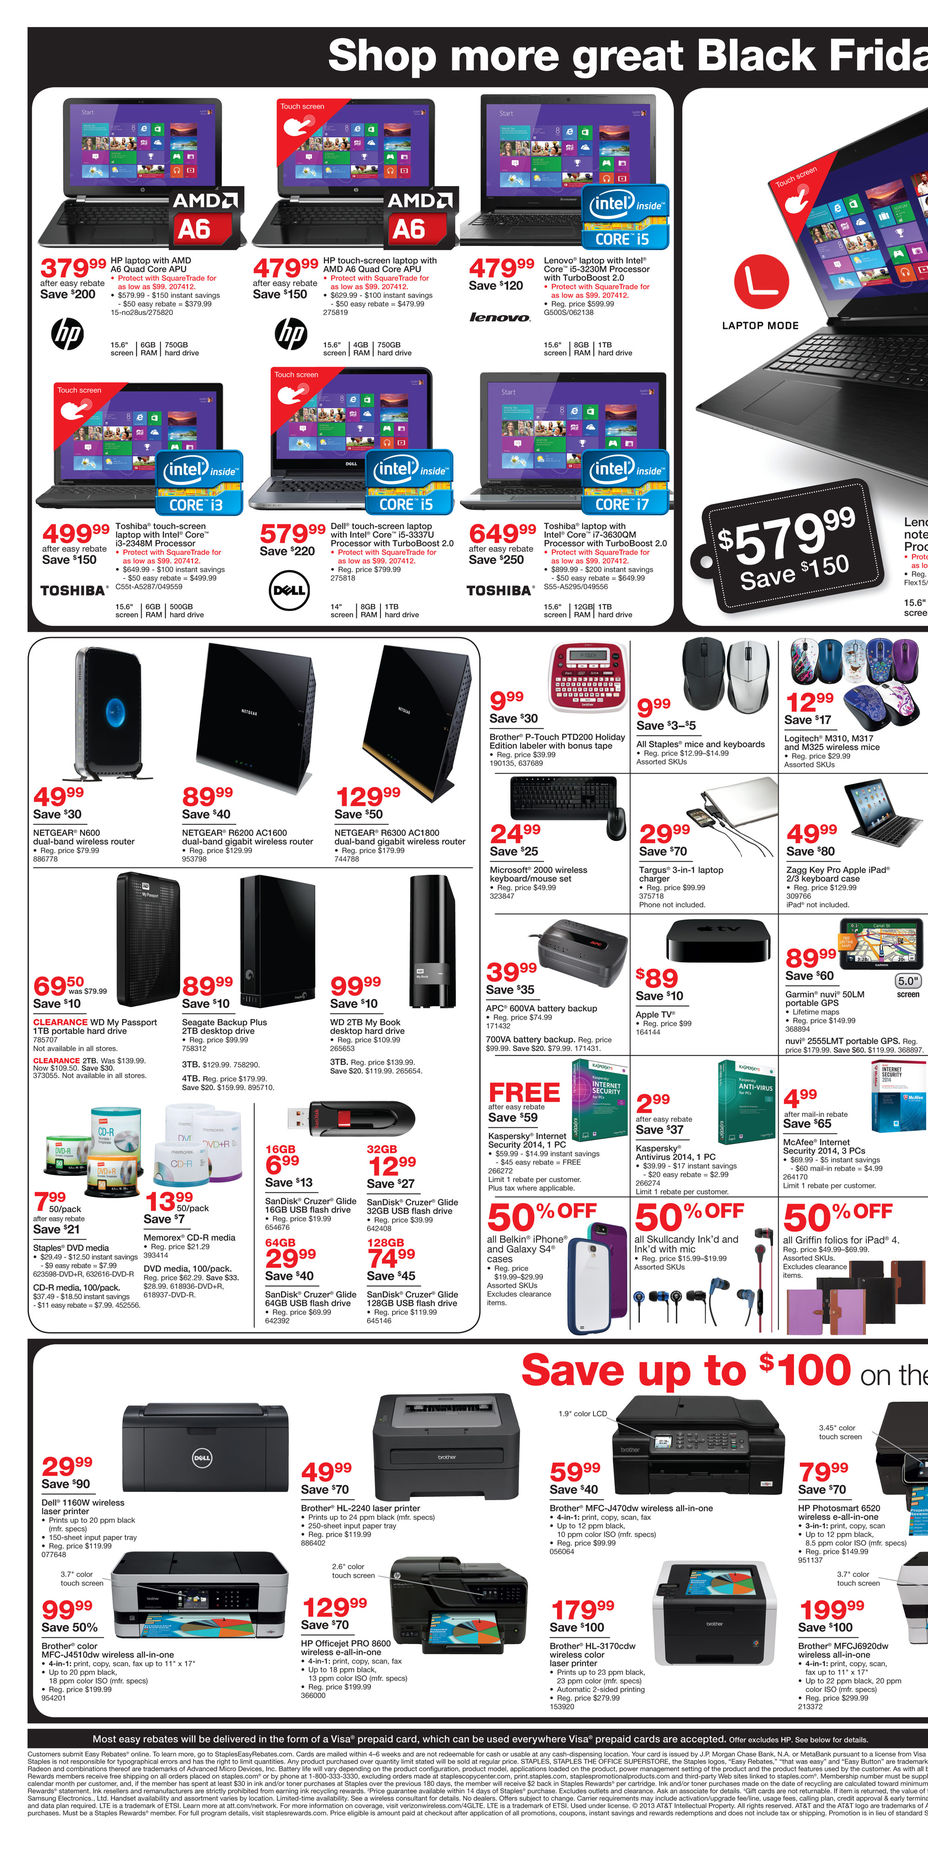 staples-black-friday-ad-page-2